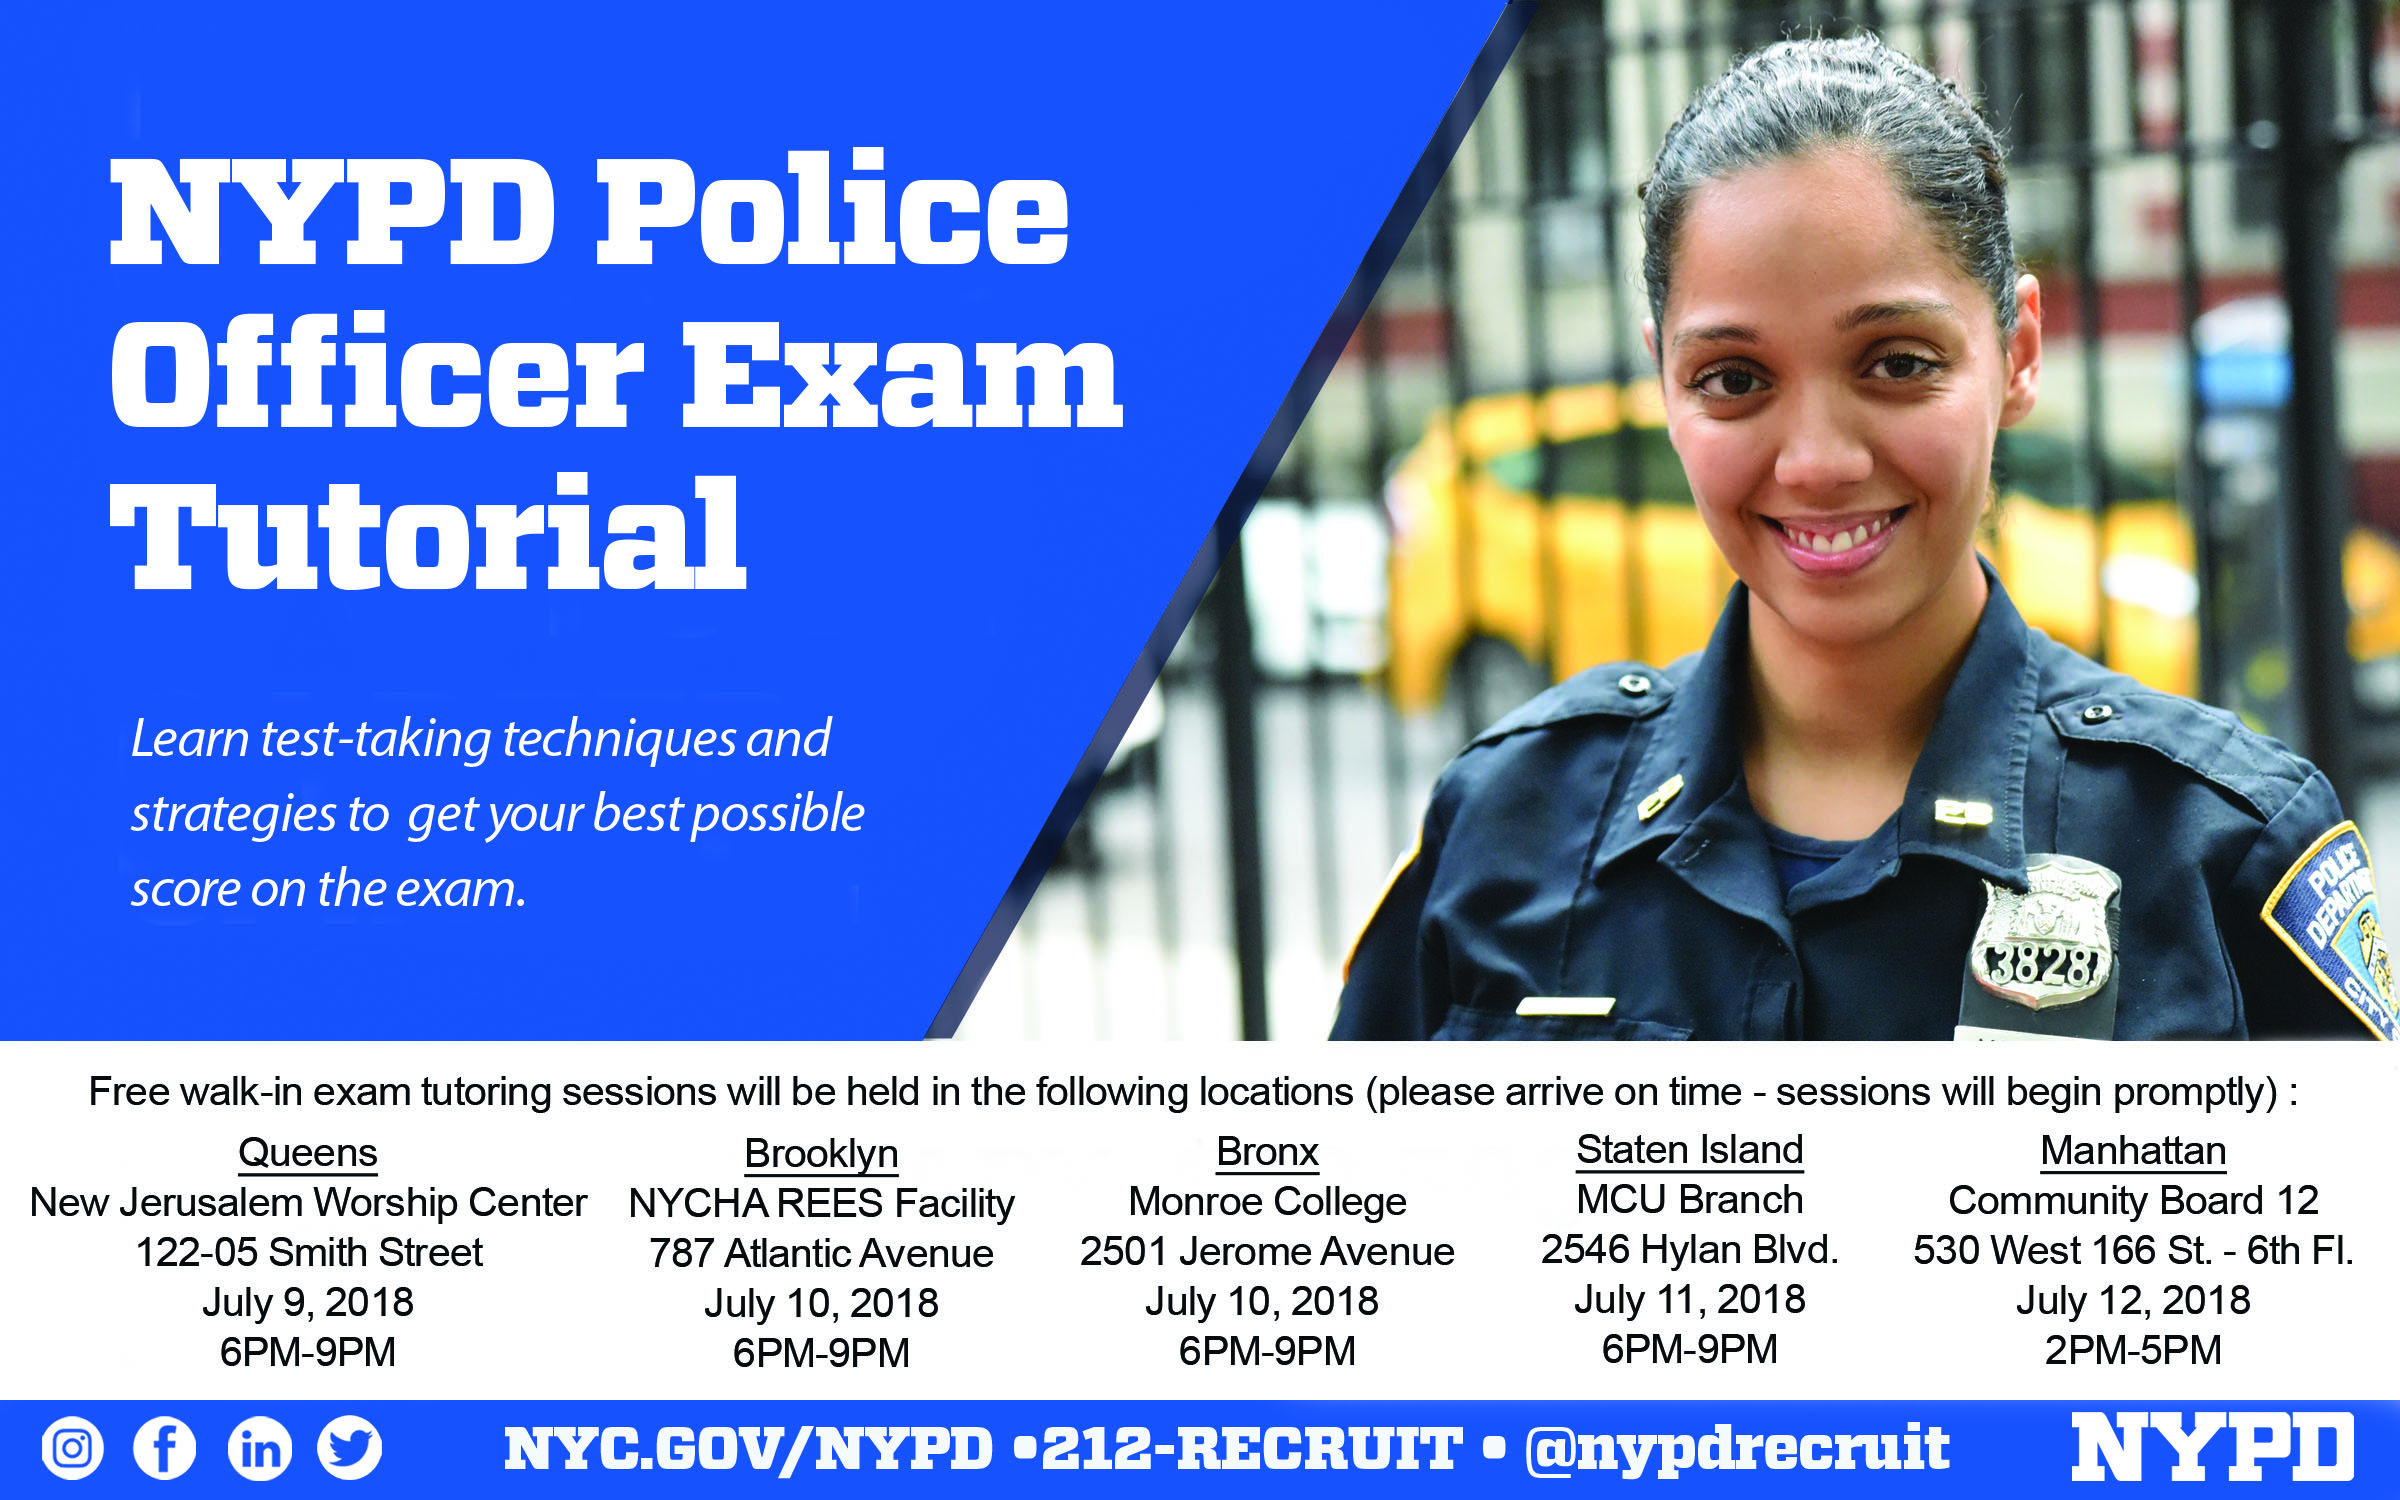 NYPD Police Officer Exam Tutorial